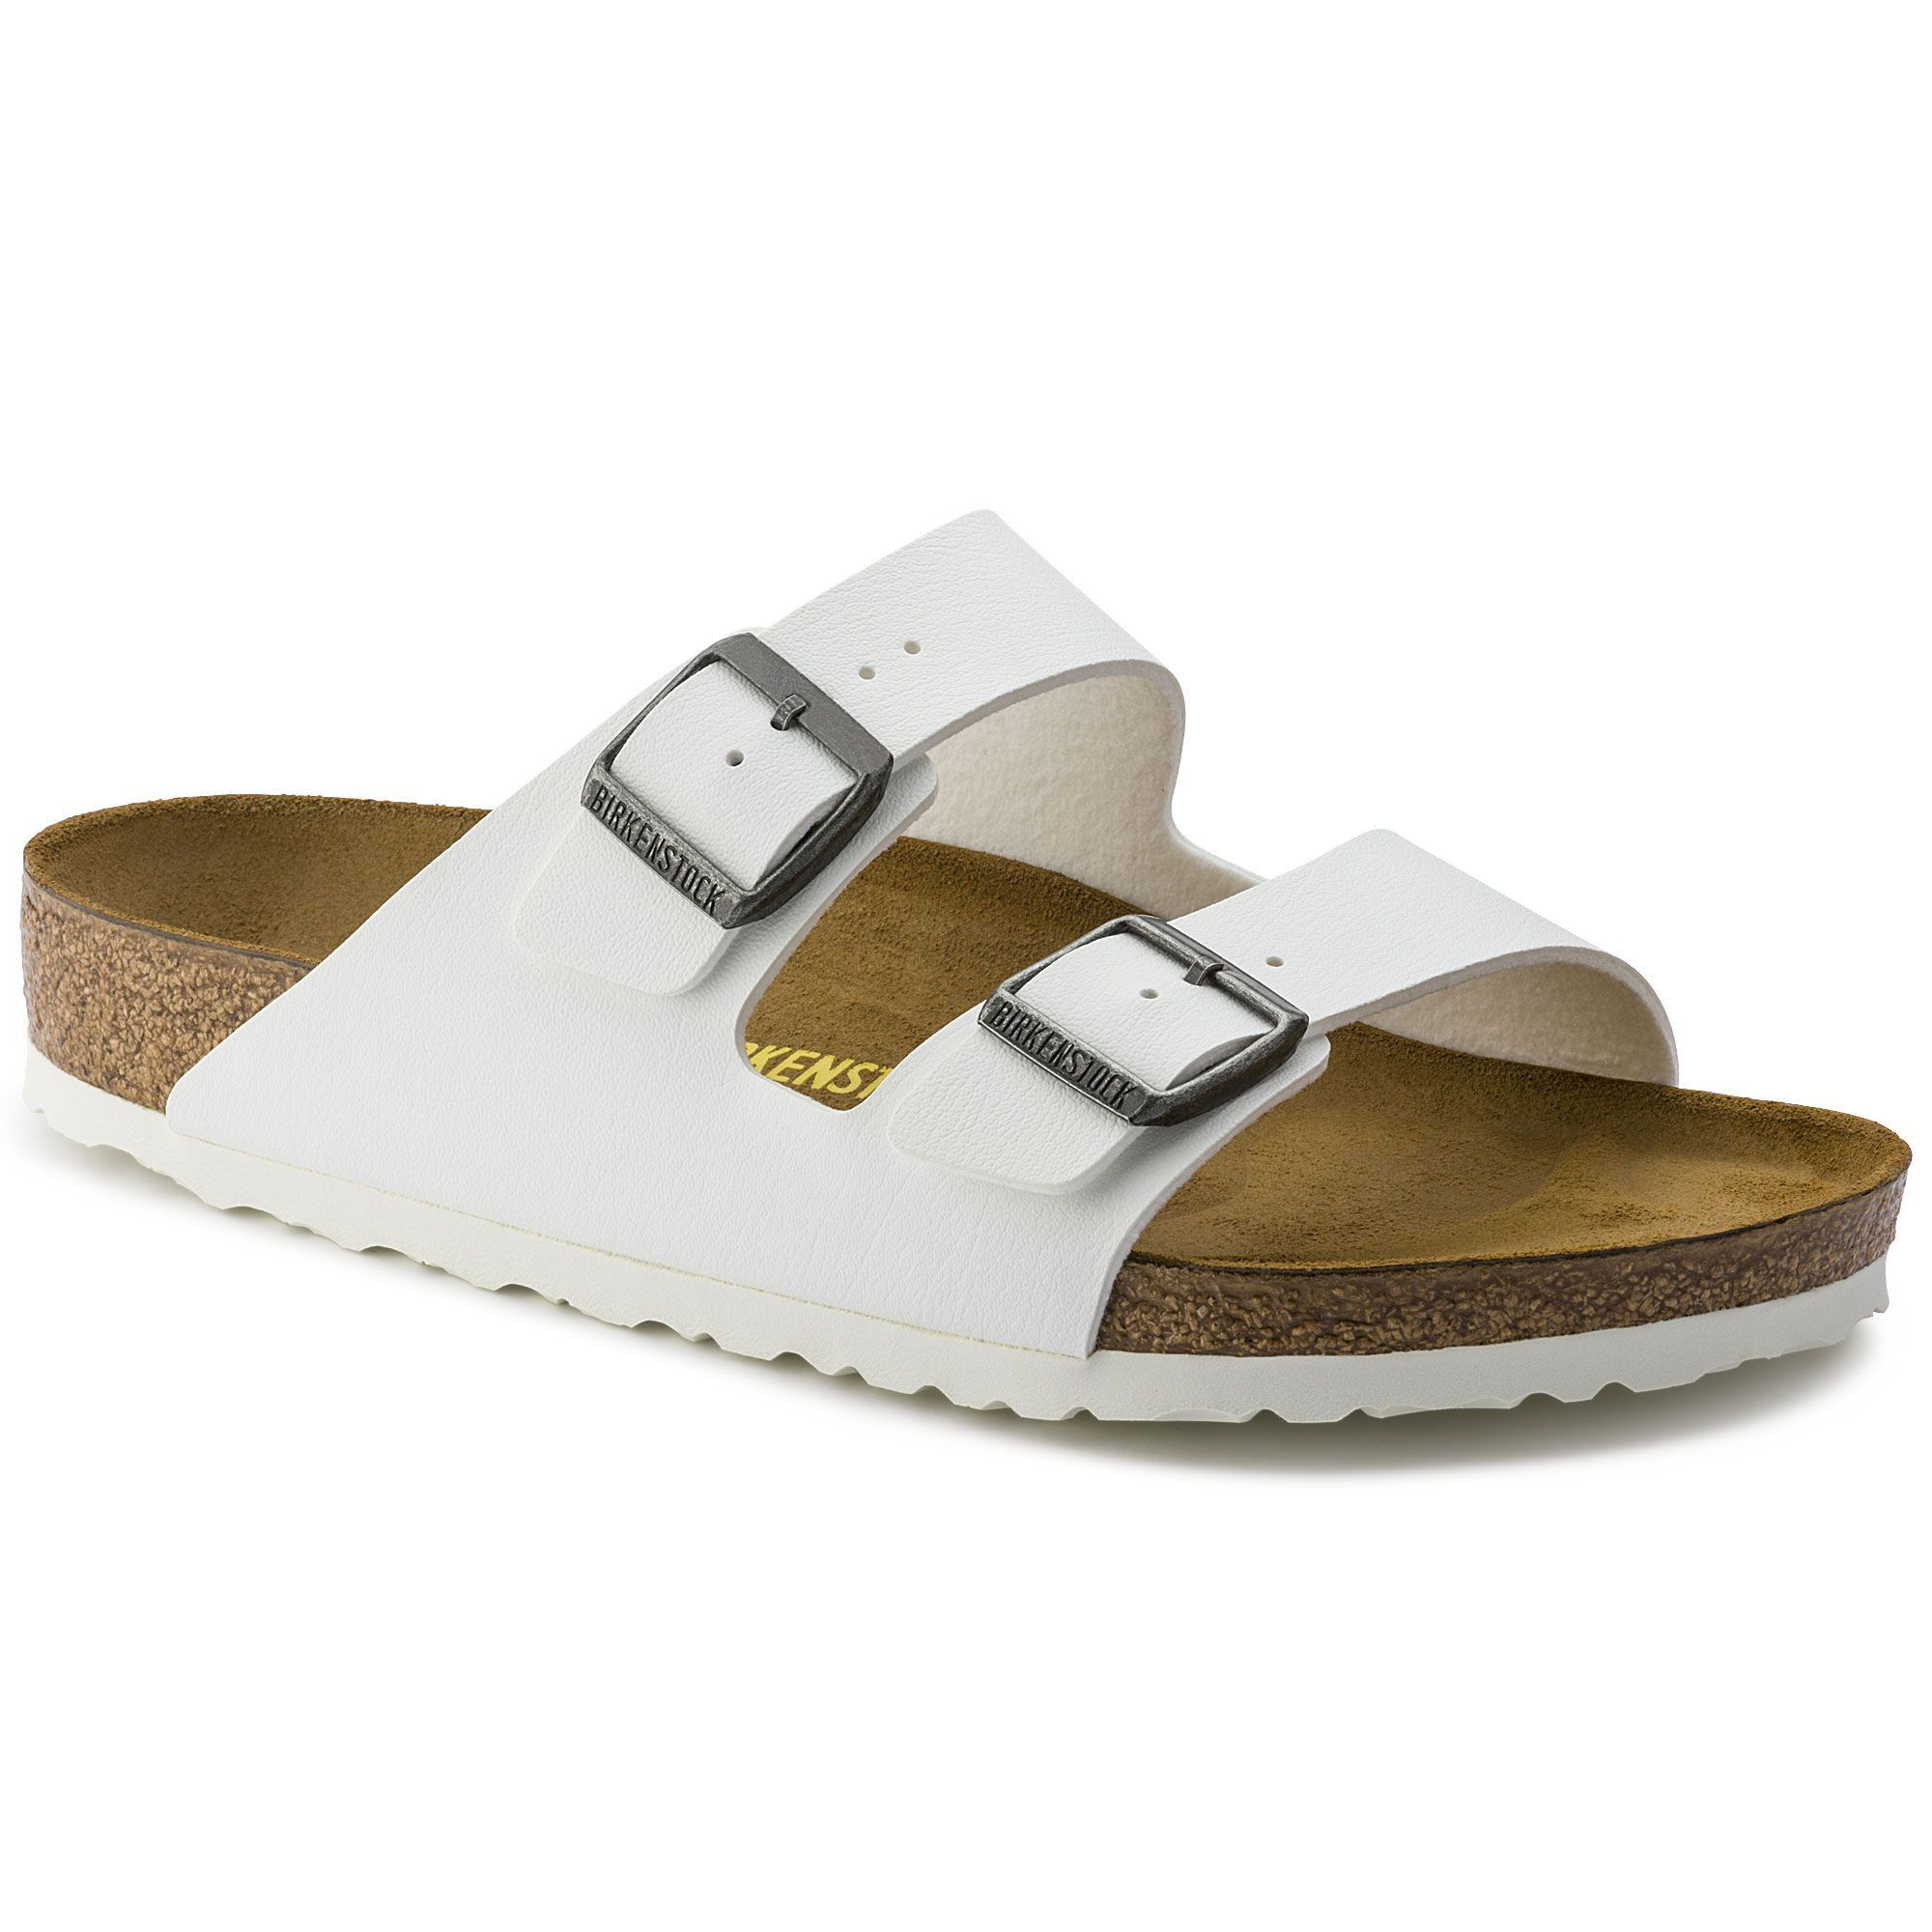 36cc1009cb Birkenstock arizona unisex sandals